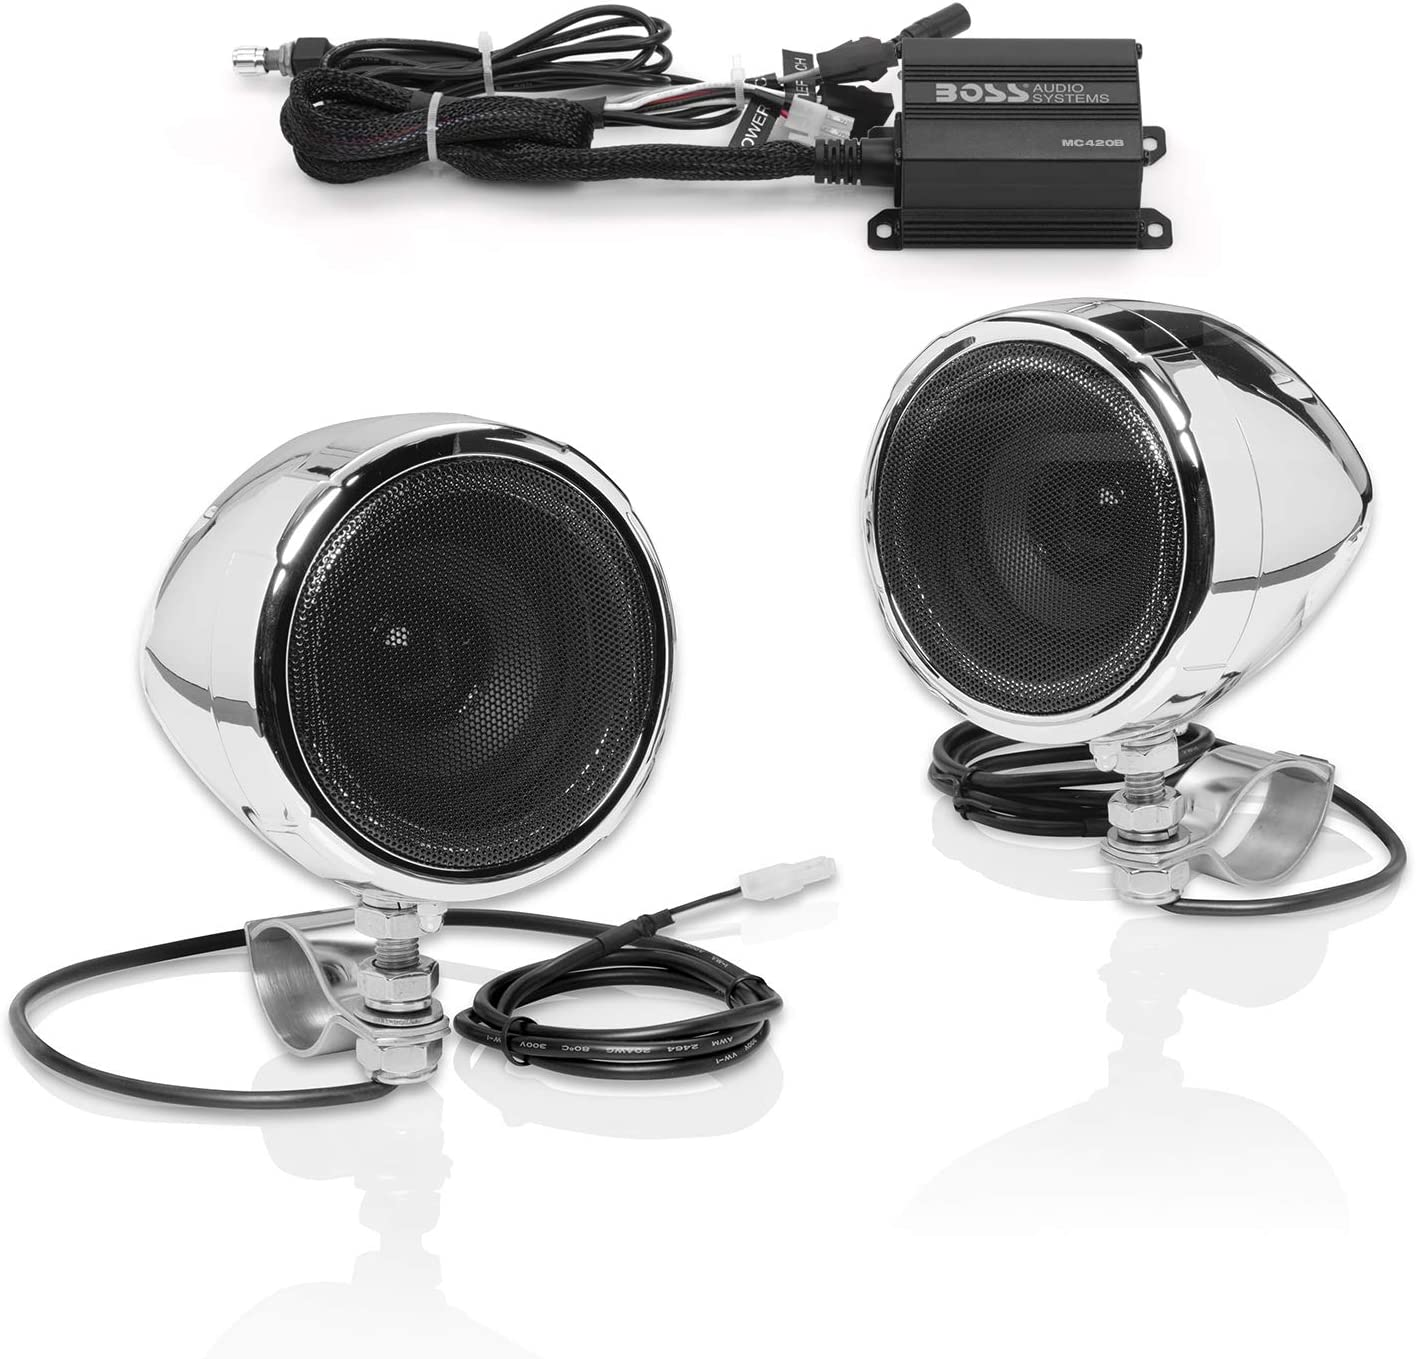 Amazon.com: BOSS Audio Systems MC420B Motorcycle Speaker System – Class D Compact Amplifier, 3 Inch Weatherproof Speakers, Volume Control, Great for ATVs, Motorcycles and All 12 Volt Vehicles: Car Electronics